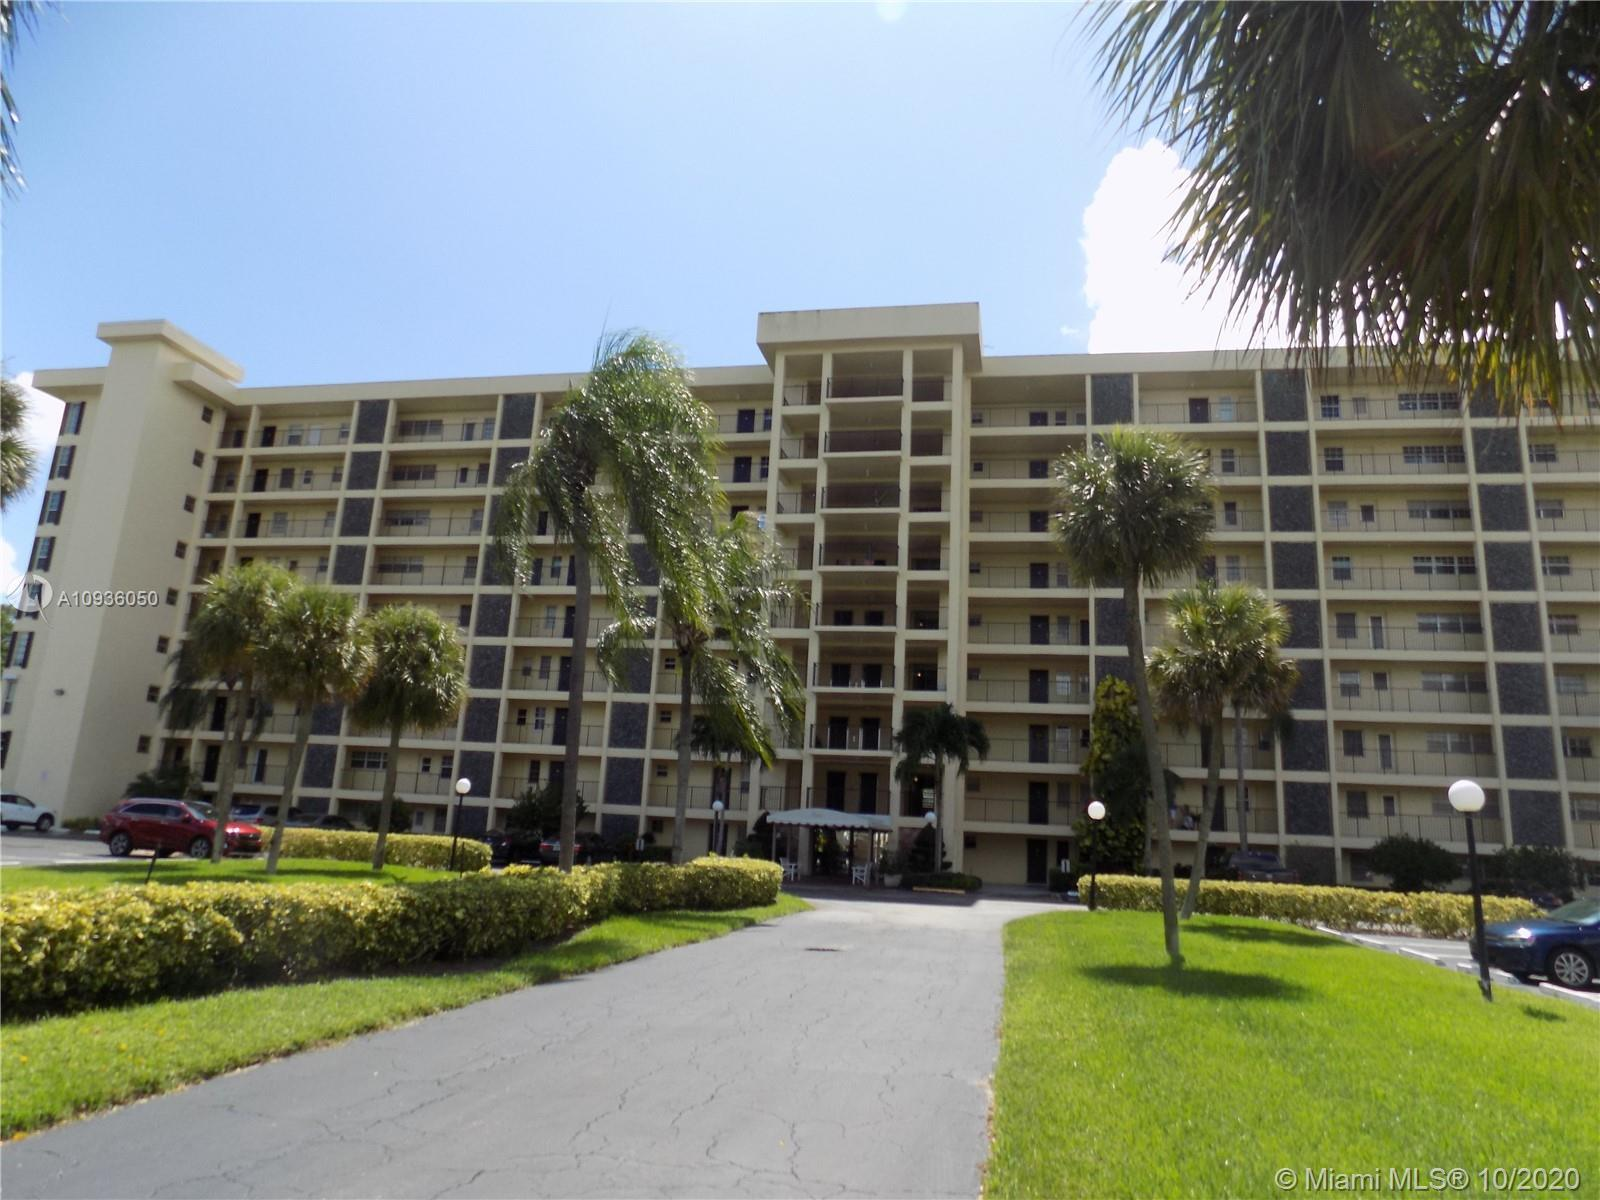 Great remodeled corner unit apartment in palm Aire Country Club with panoramic golf view. Remodeled